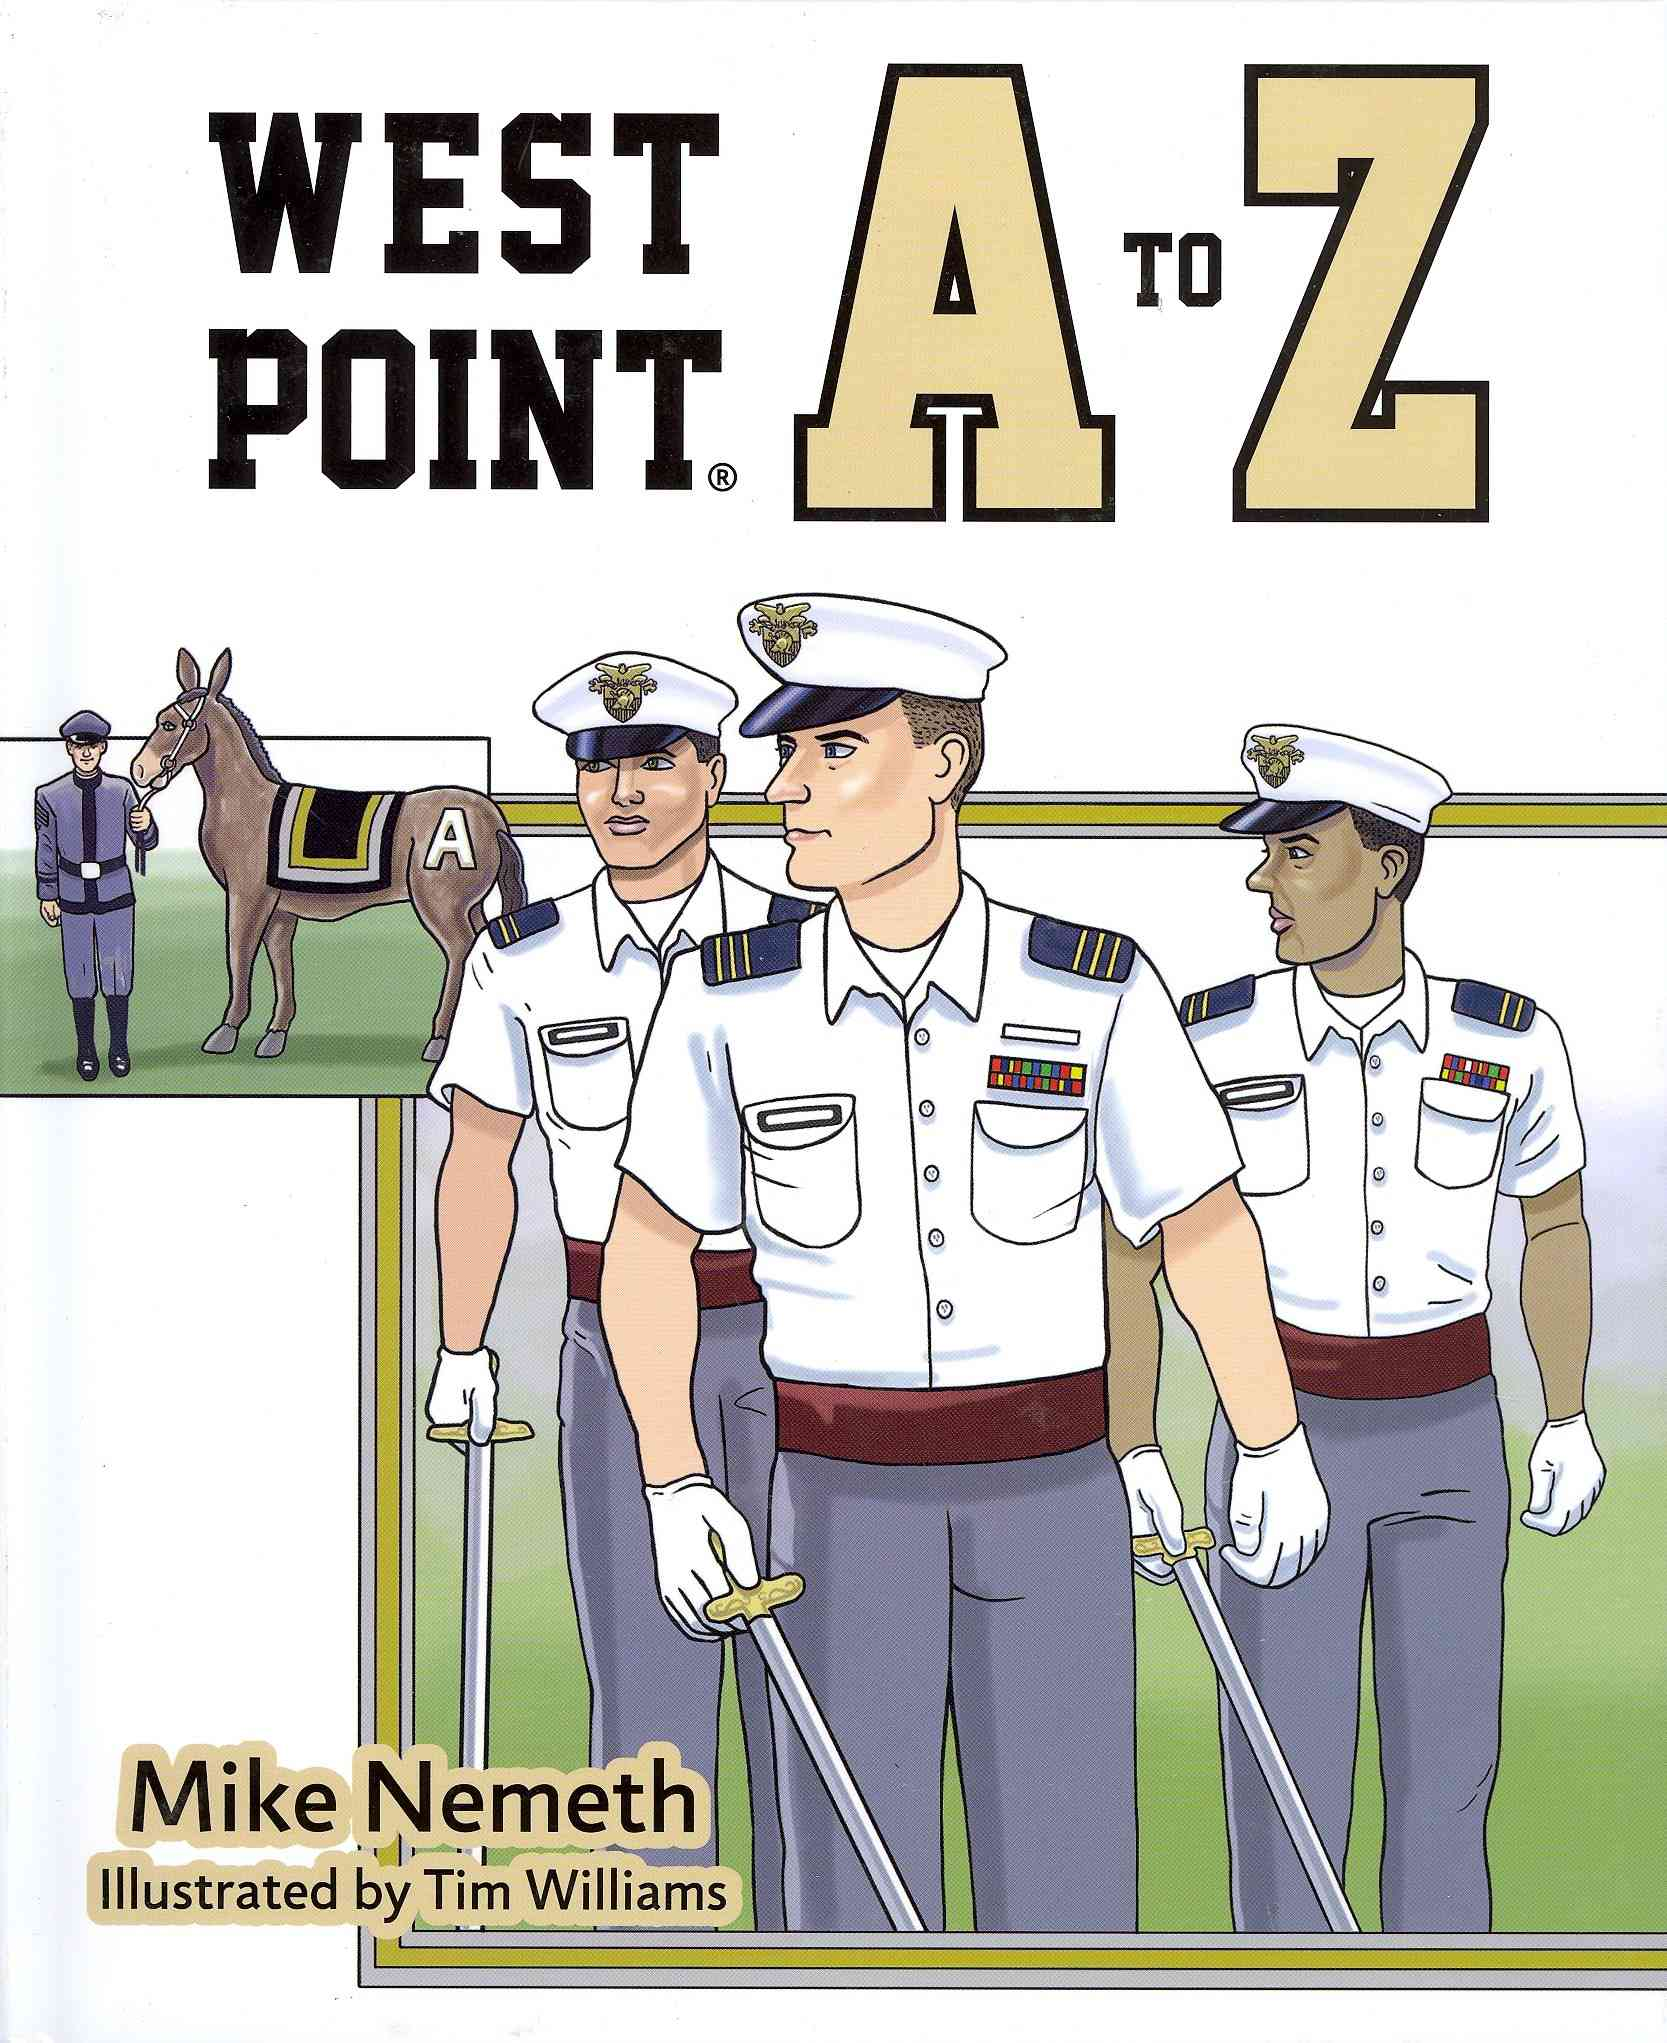 West Point By Nemeth, Mike